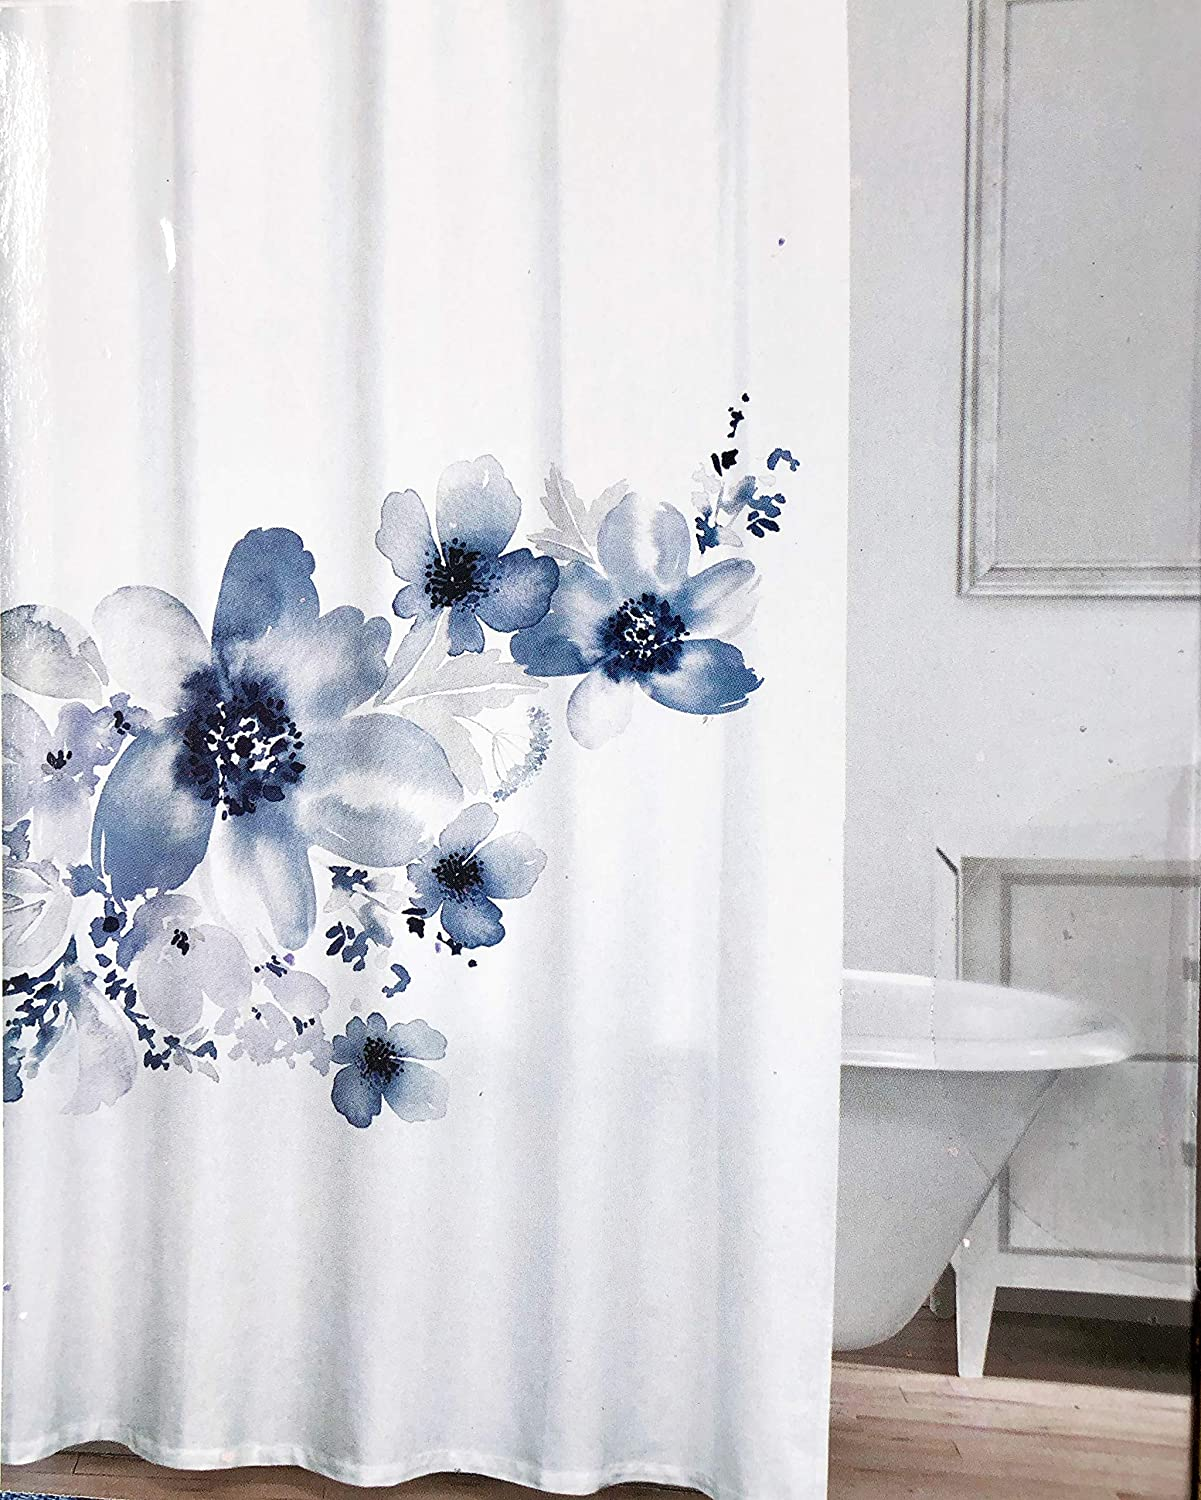 Caro Fabric Shower Curtain Floral Flowers Pattern Shades of Gray and Blue on White - Lola Gray Navy